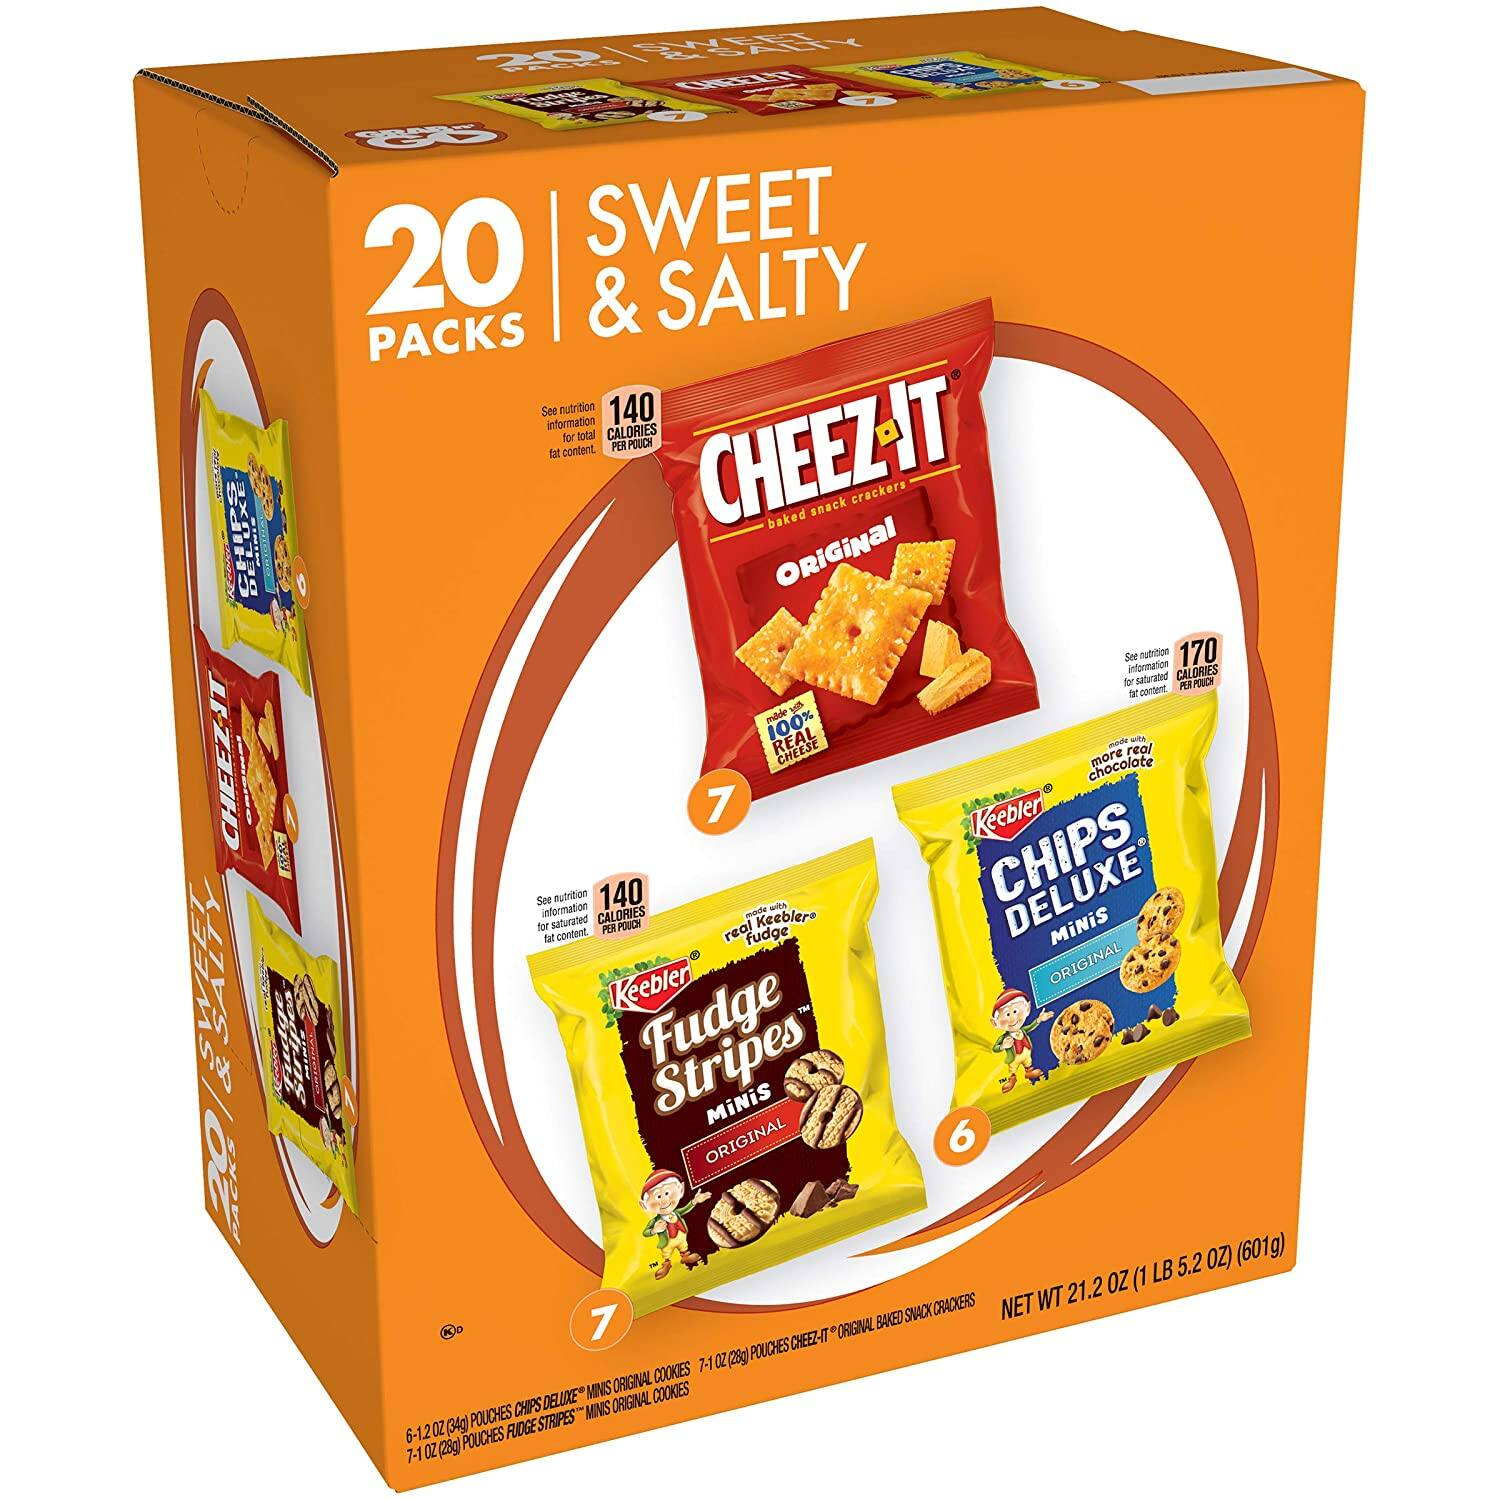 80 for $17: Keebler Variety Cookies, Fudge Stripes, Chips Deluxe Original & Cheez-It, 20 Count, 4 Count at amazon FSw/Prime $16.84